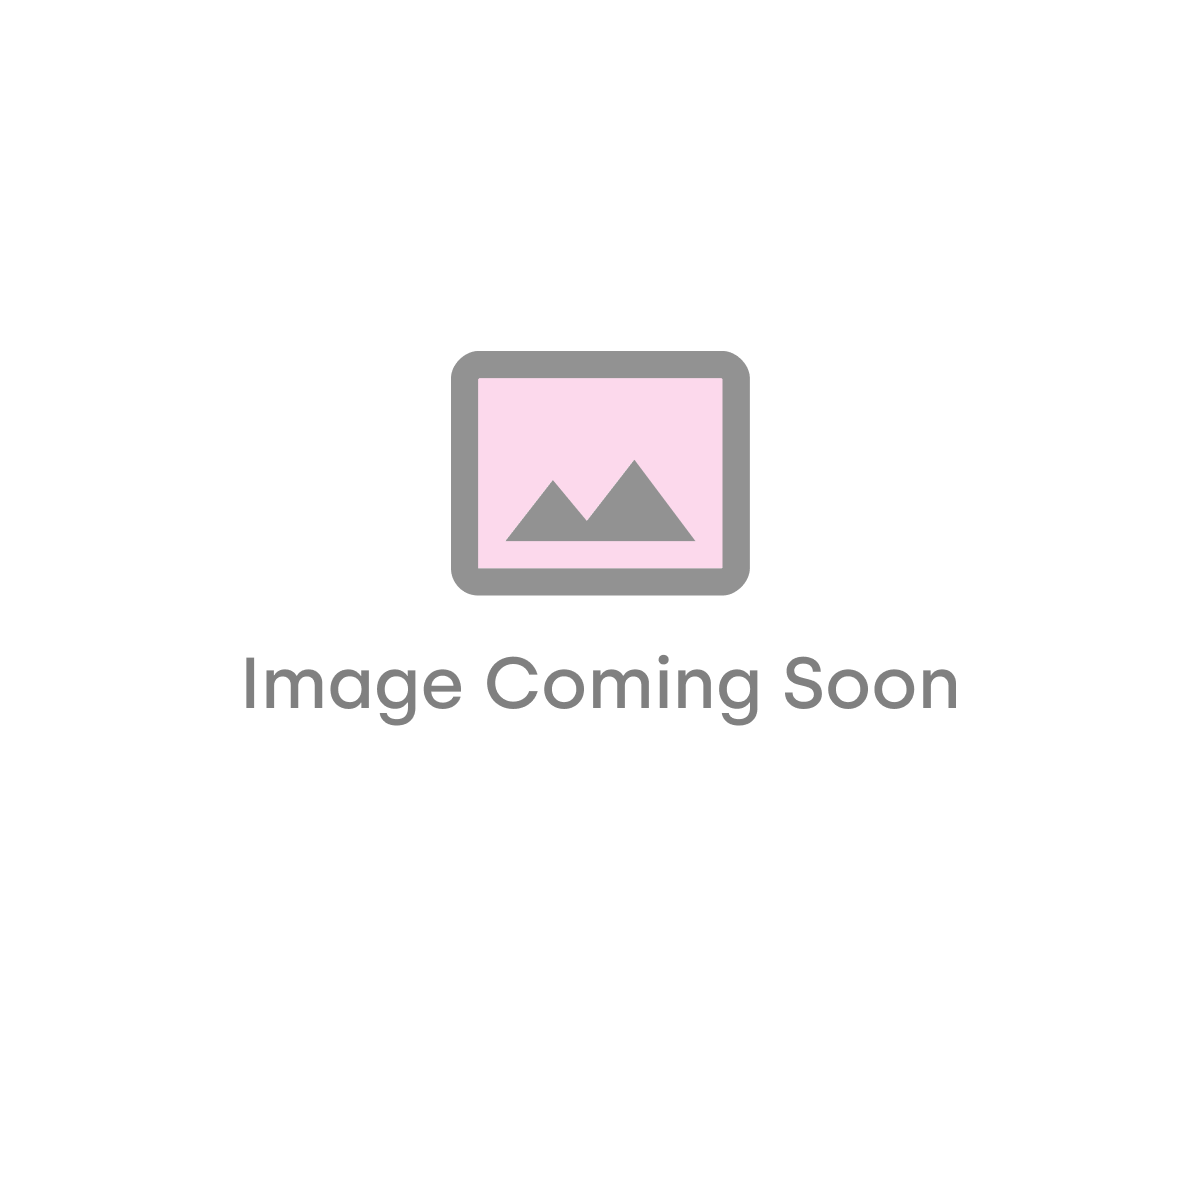 Sherwood Oak 8mm Laminate Wooden Flooring - 2.22sqm per pack (13959)